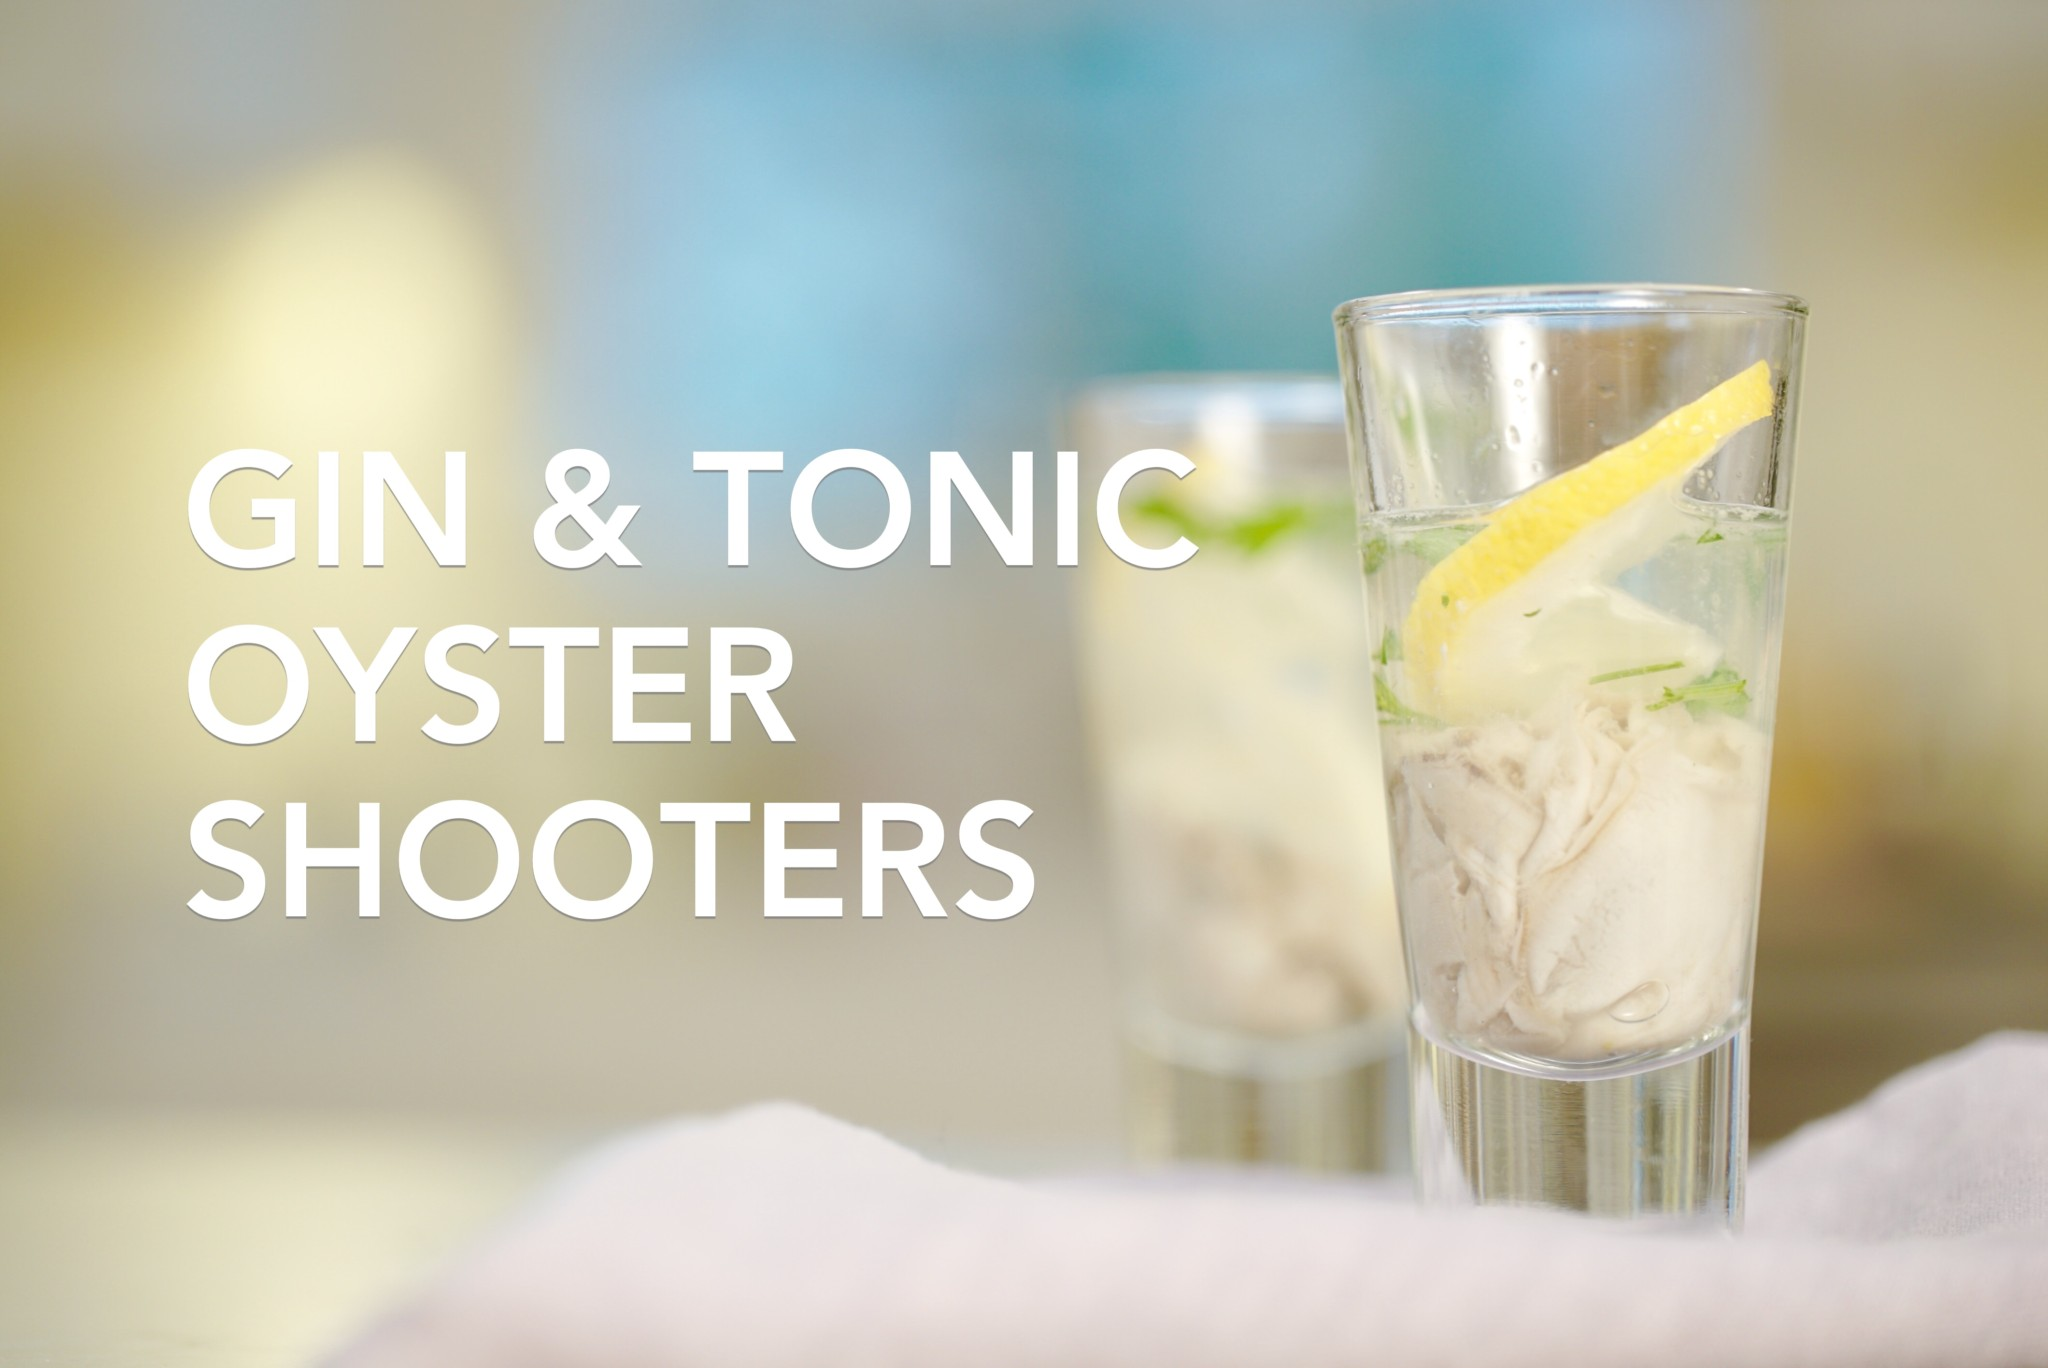 gin and tonic oyster shooters